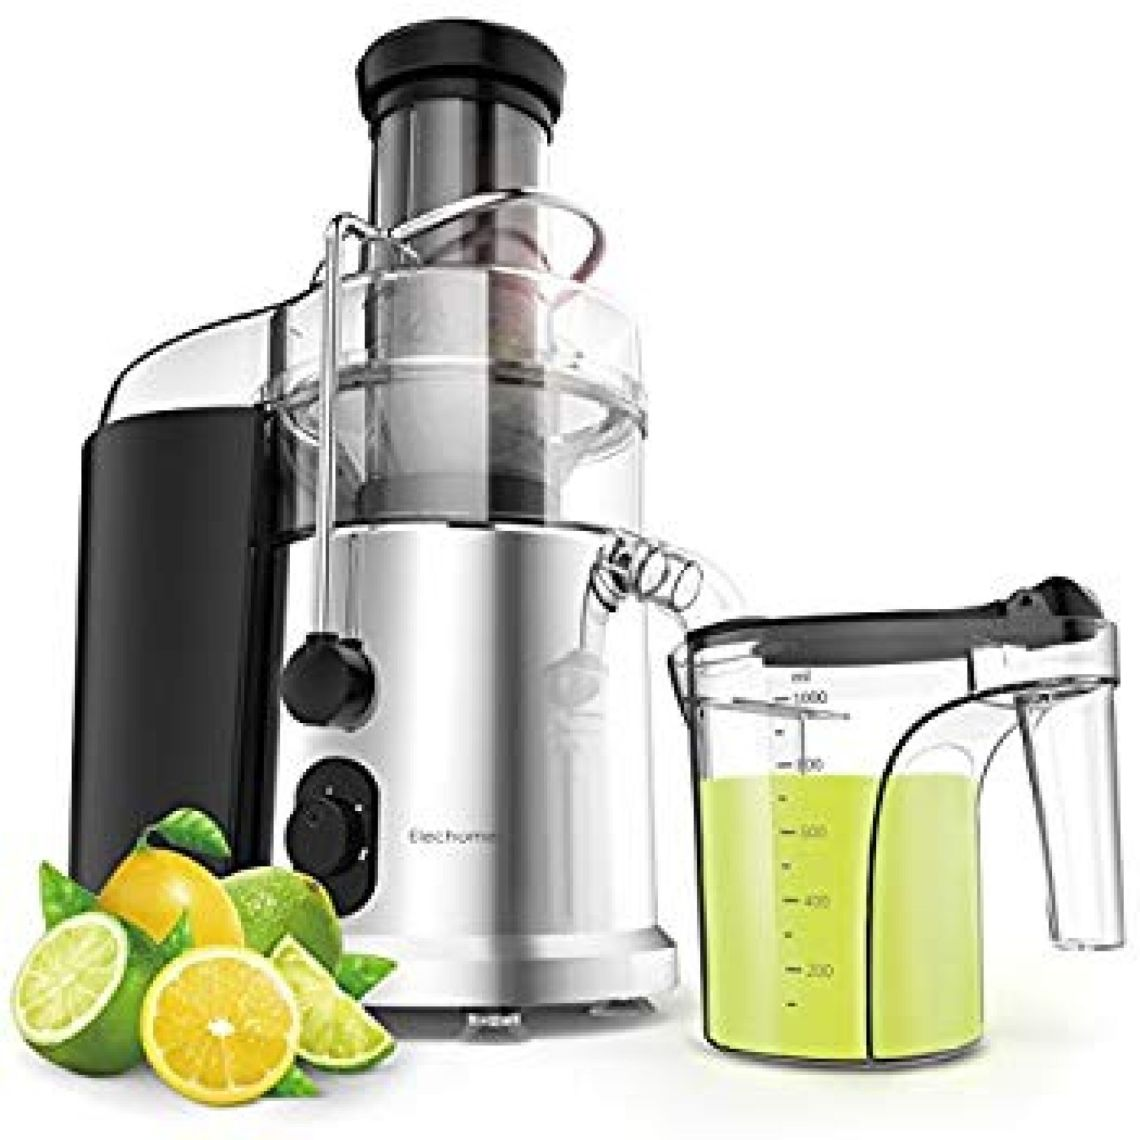 Amazon.com: 900W Wide Mouth Centrifugal Juicer - Elechomes 2 Speeds High Speed Juicer for Fruits and Vegetables with Premium Food Grade Titanium-Coated Cutter: Kitchen & Dining